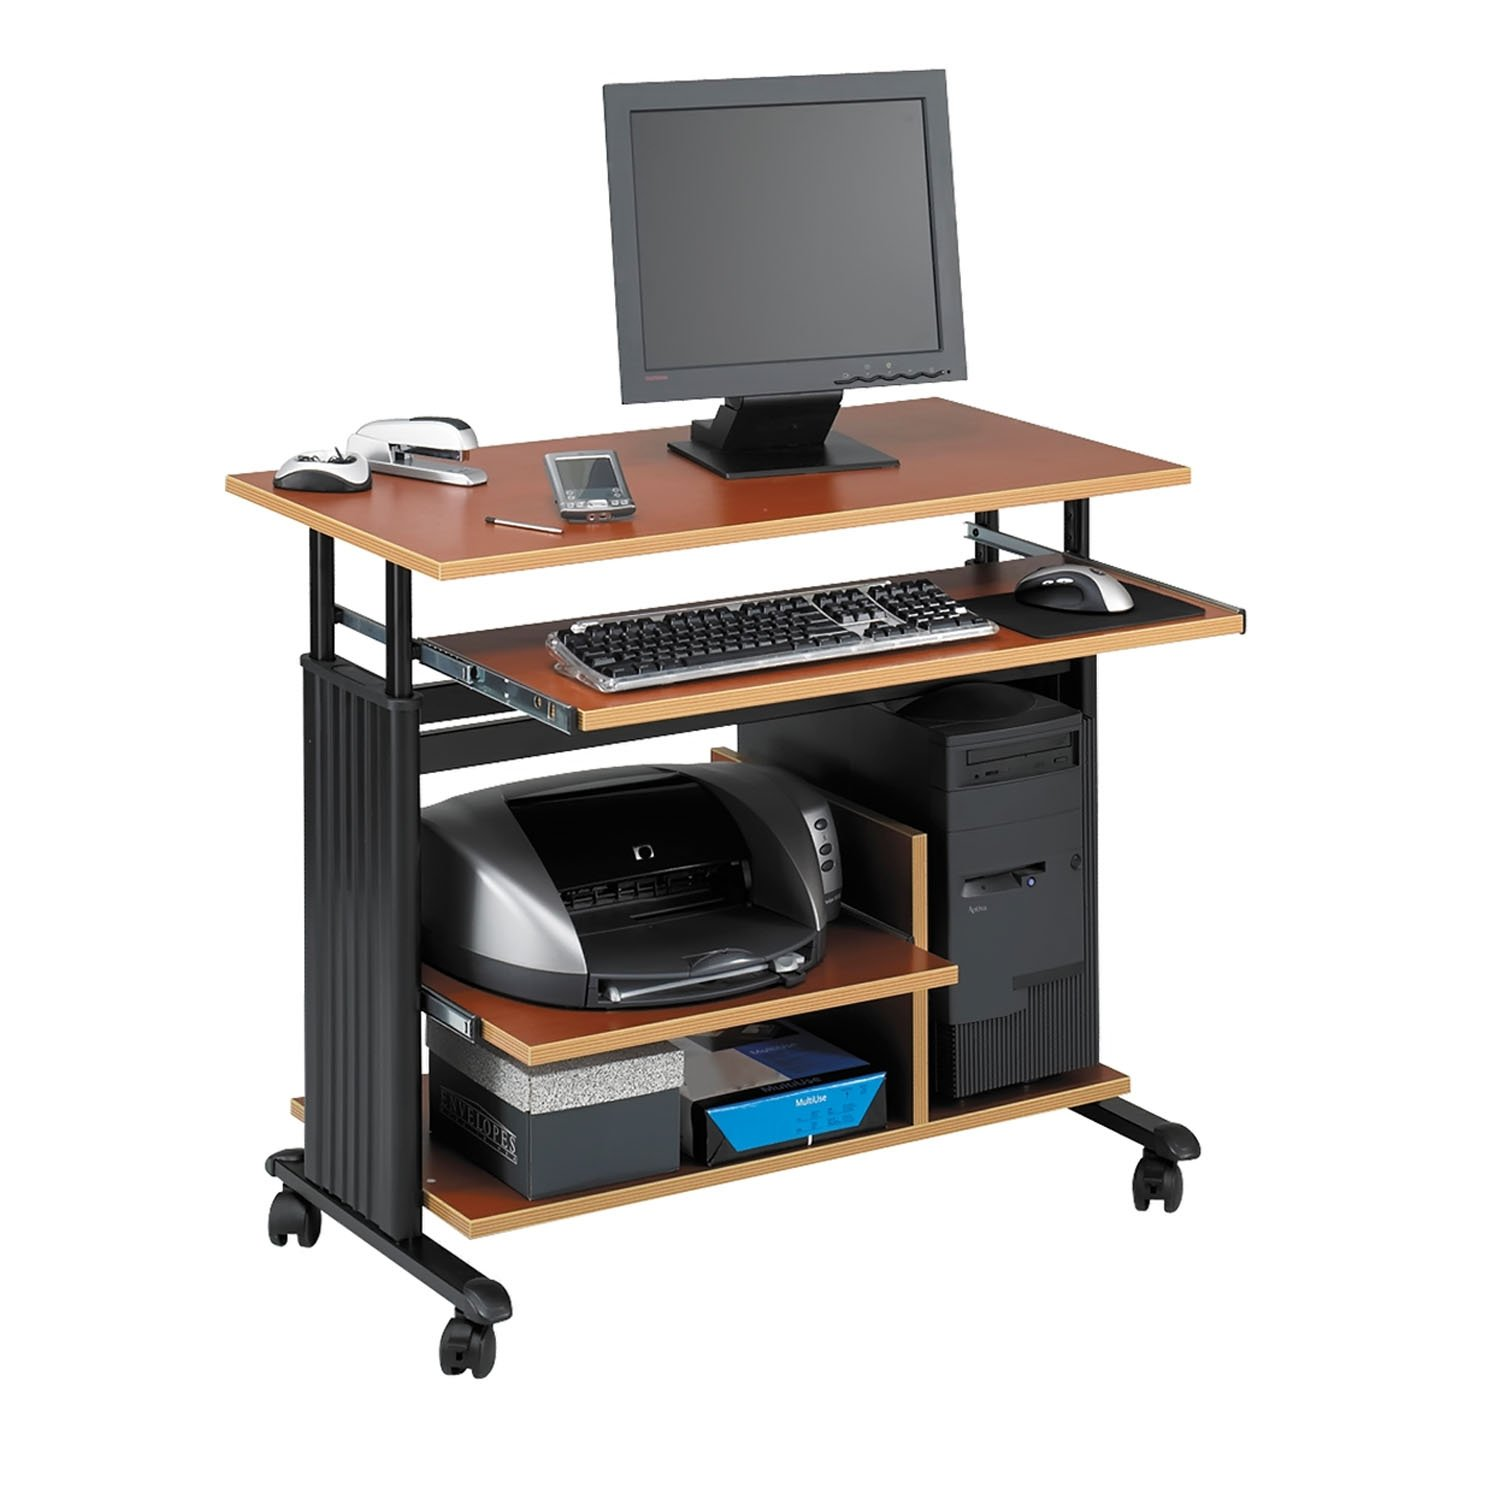 Safco Products 1927CY Muv Mini Tower 29-34H Stand-Up Desk Adjustable Height Computer Workstation with Keyboard Shelf